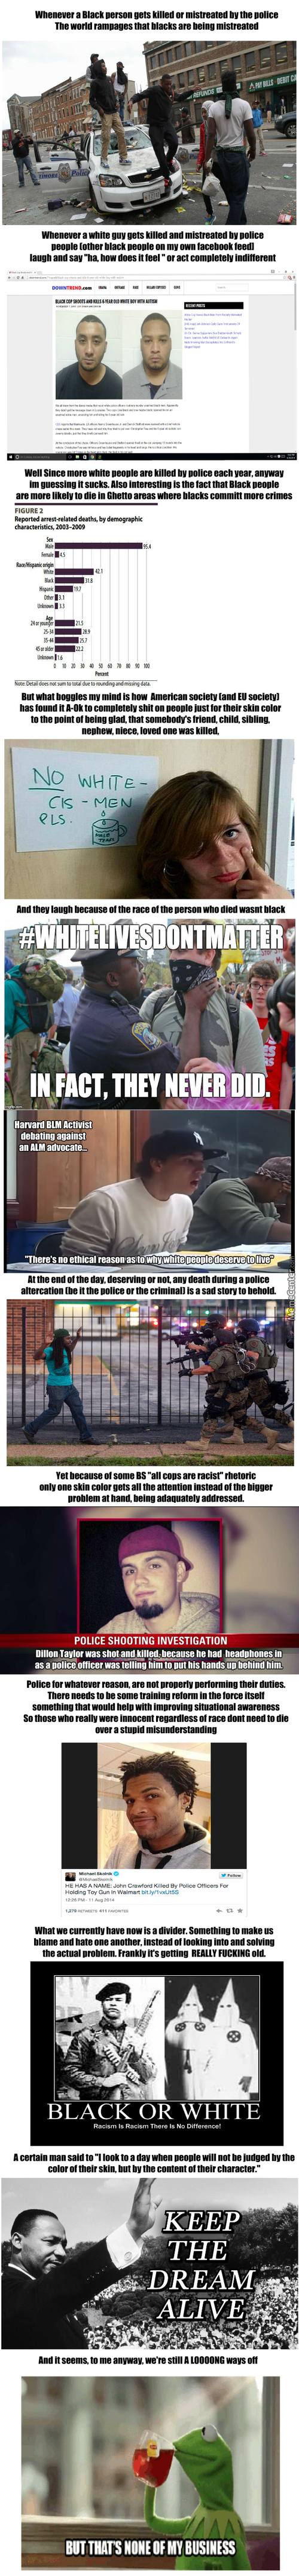 All Lives Matter [Long Post Incoming]